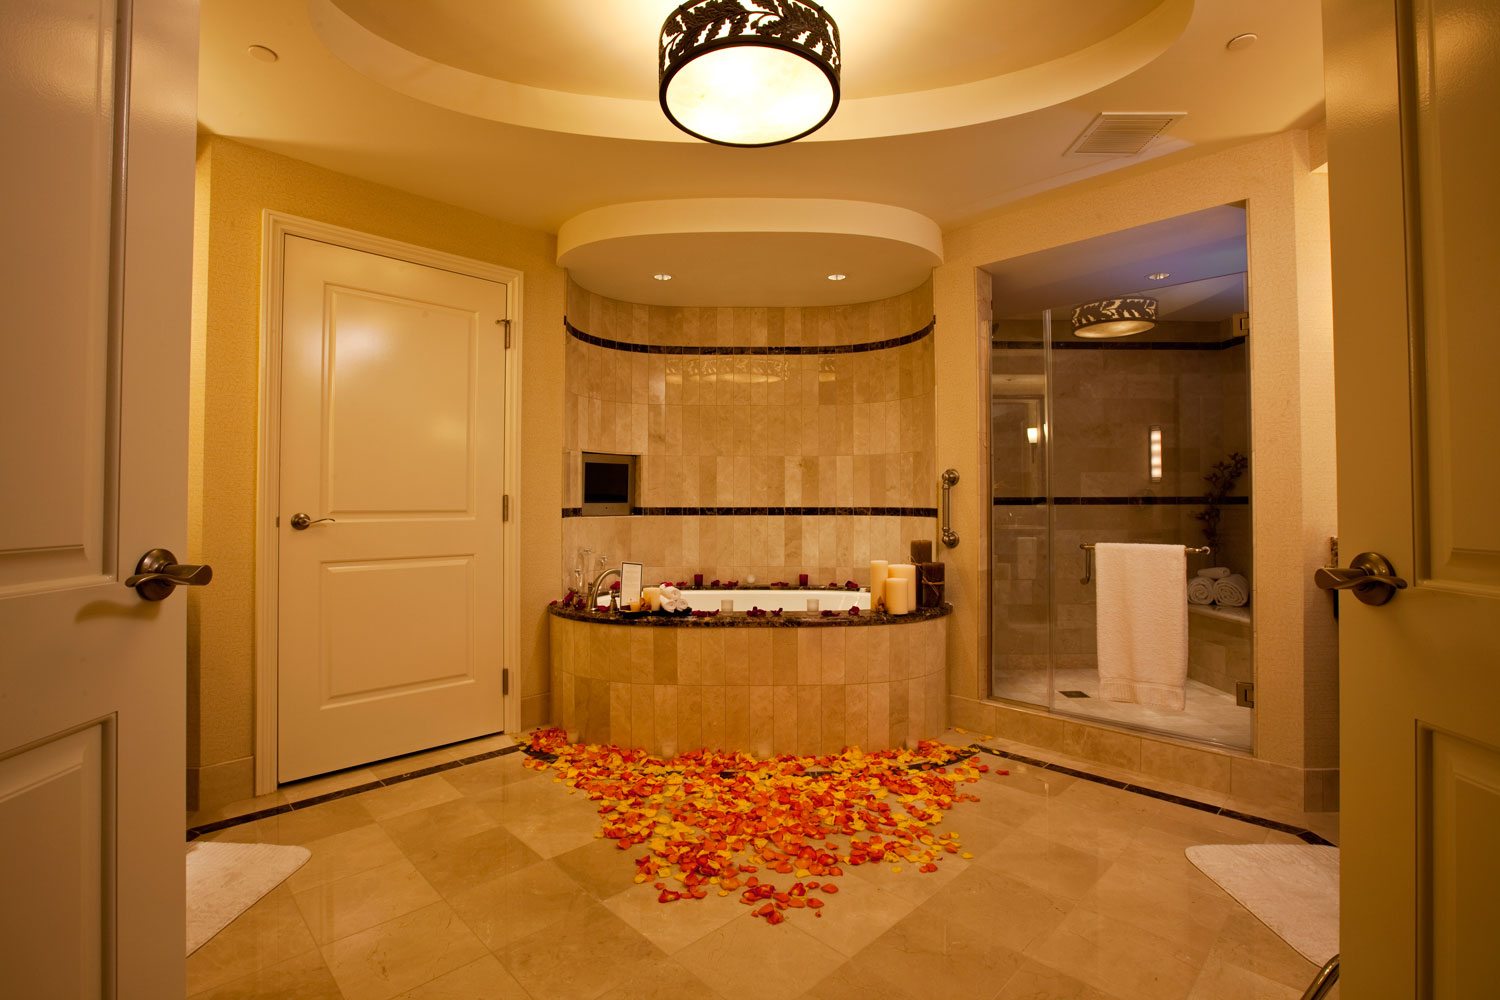 Request our signature No Limit Service to pre-schedule a bath drawn for you during your stay.